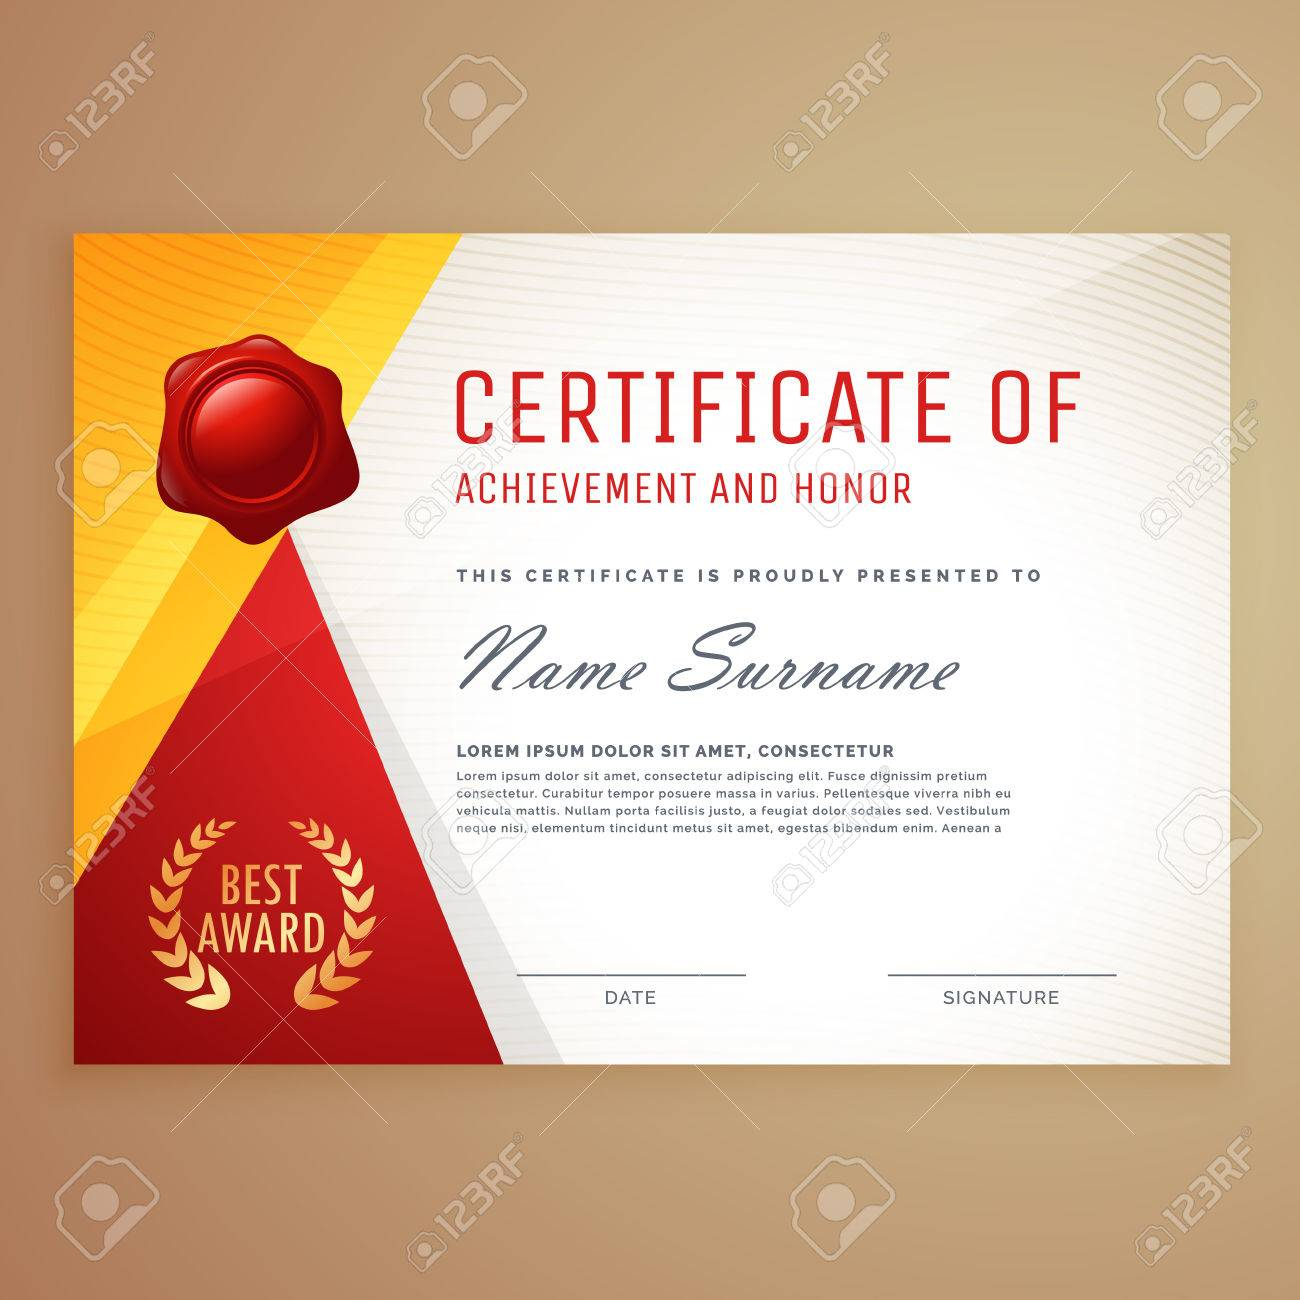 Modern Certificate Template Design Royalty Free Cliparts Vectors